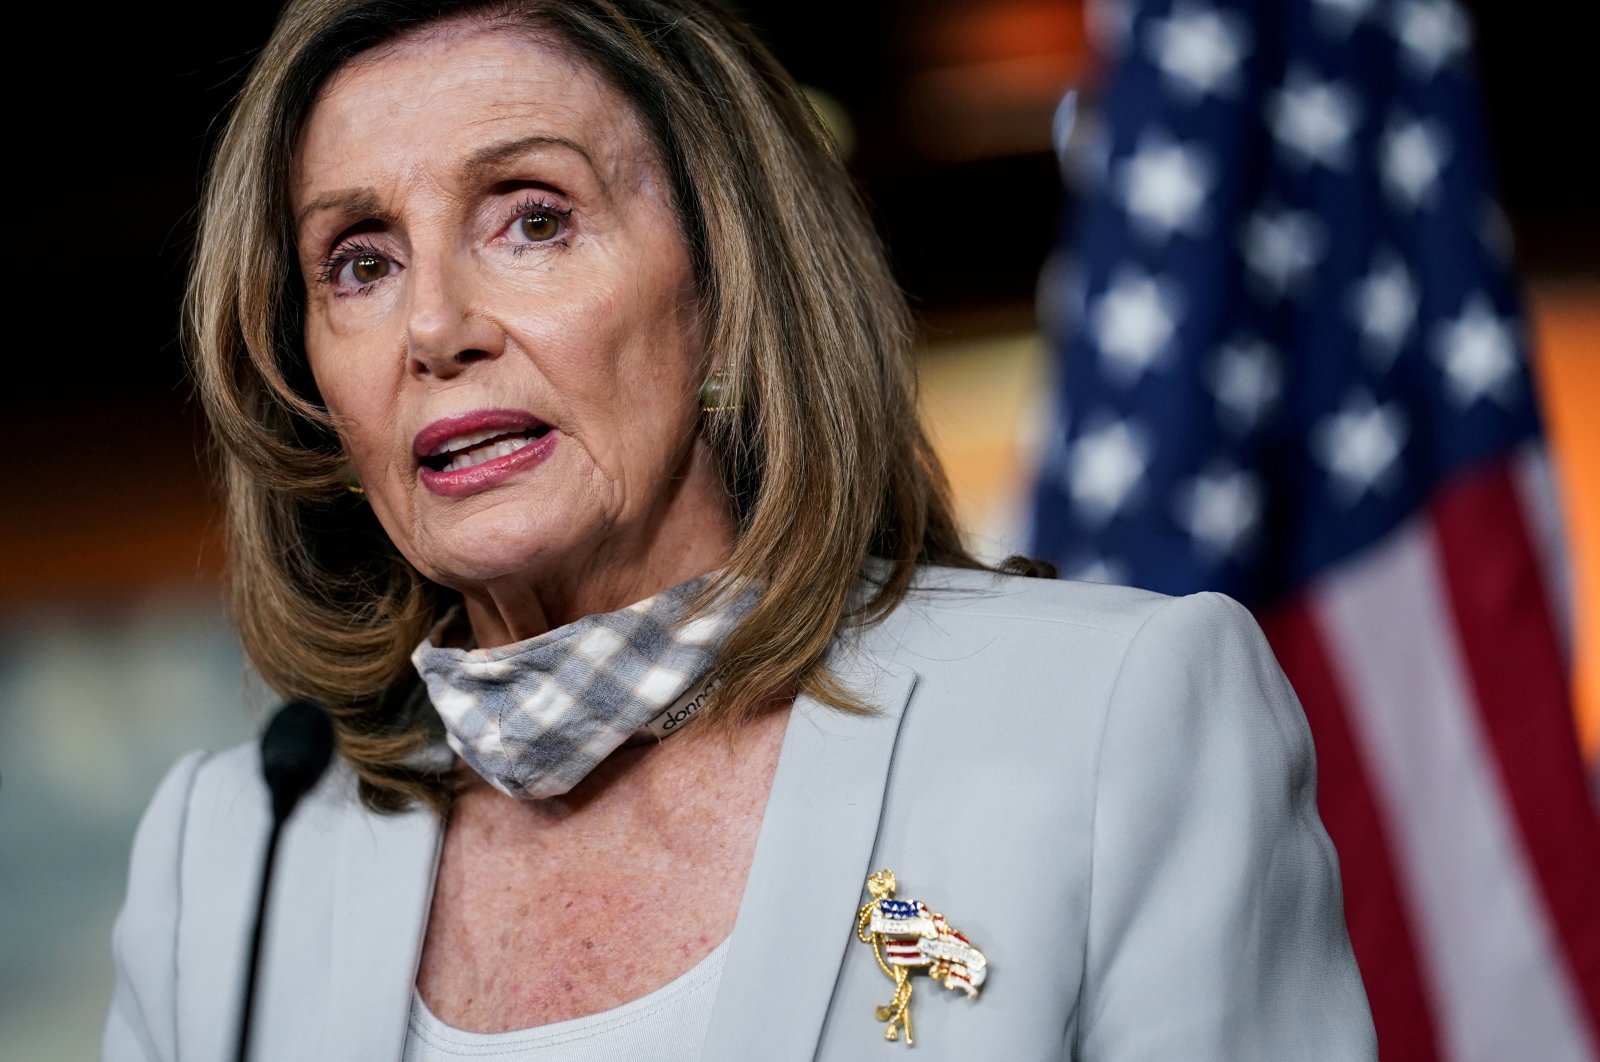 U.S. House Speaker Nancy Pelosi (D-CA) speaks about stalled congressional talks with the Trump administration on the latest coronavirus relief during her weekly news conference on Capitol Hill in Washington, U.S., Aug. 13, 2020. (Reuters Photo)